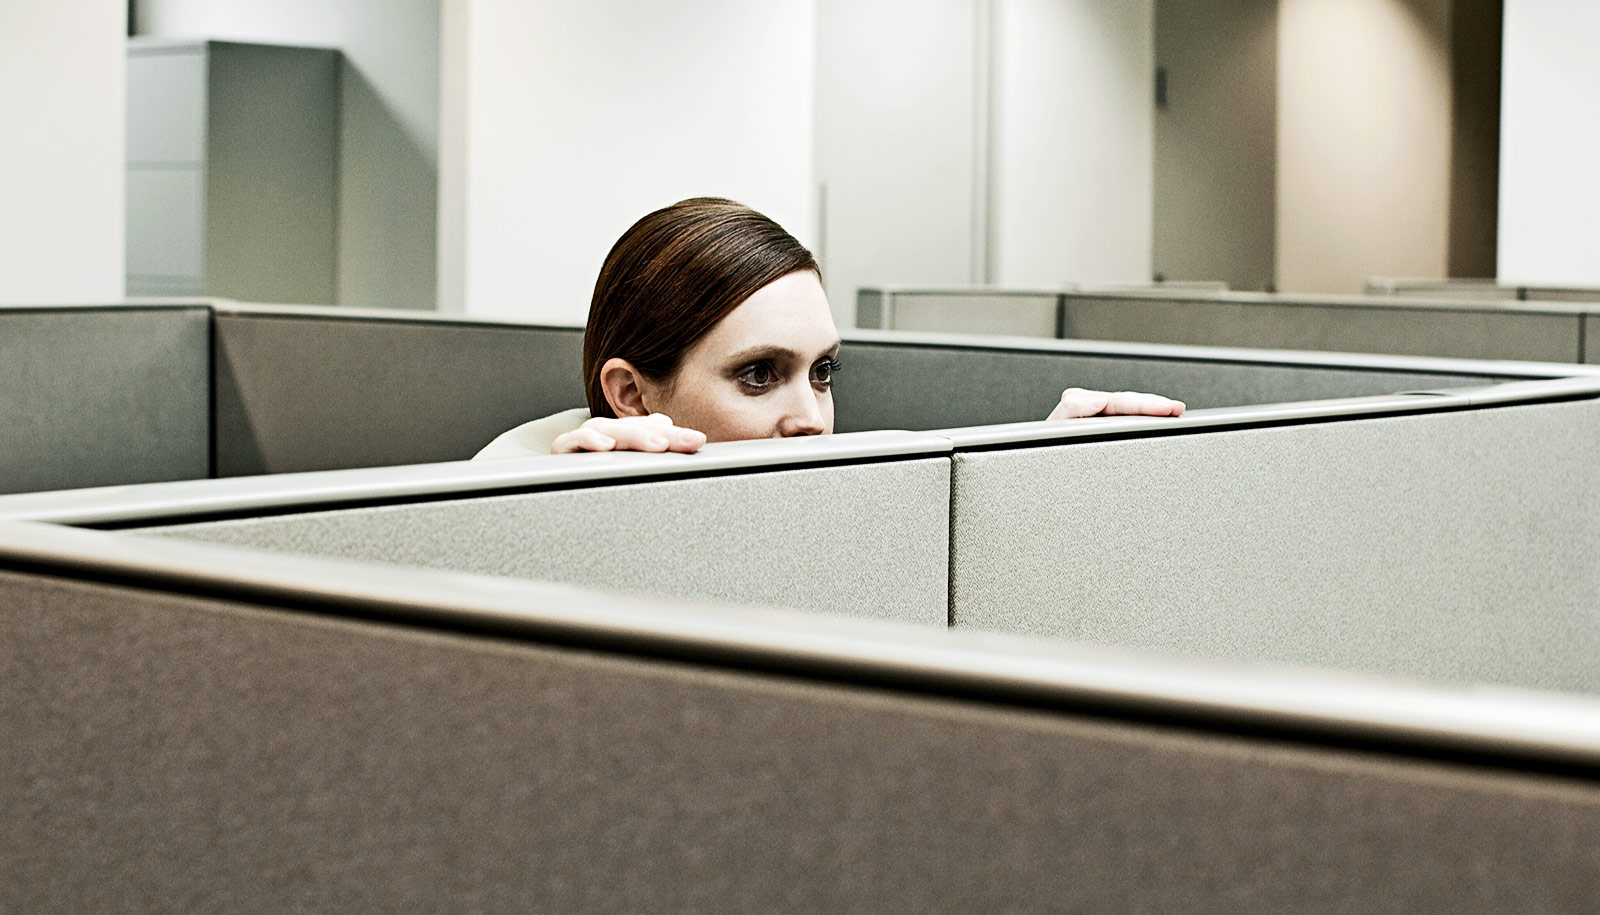 Cheaters are more likely to break work rules, too